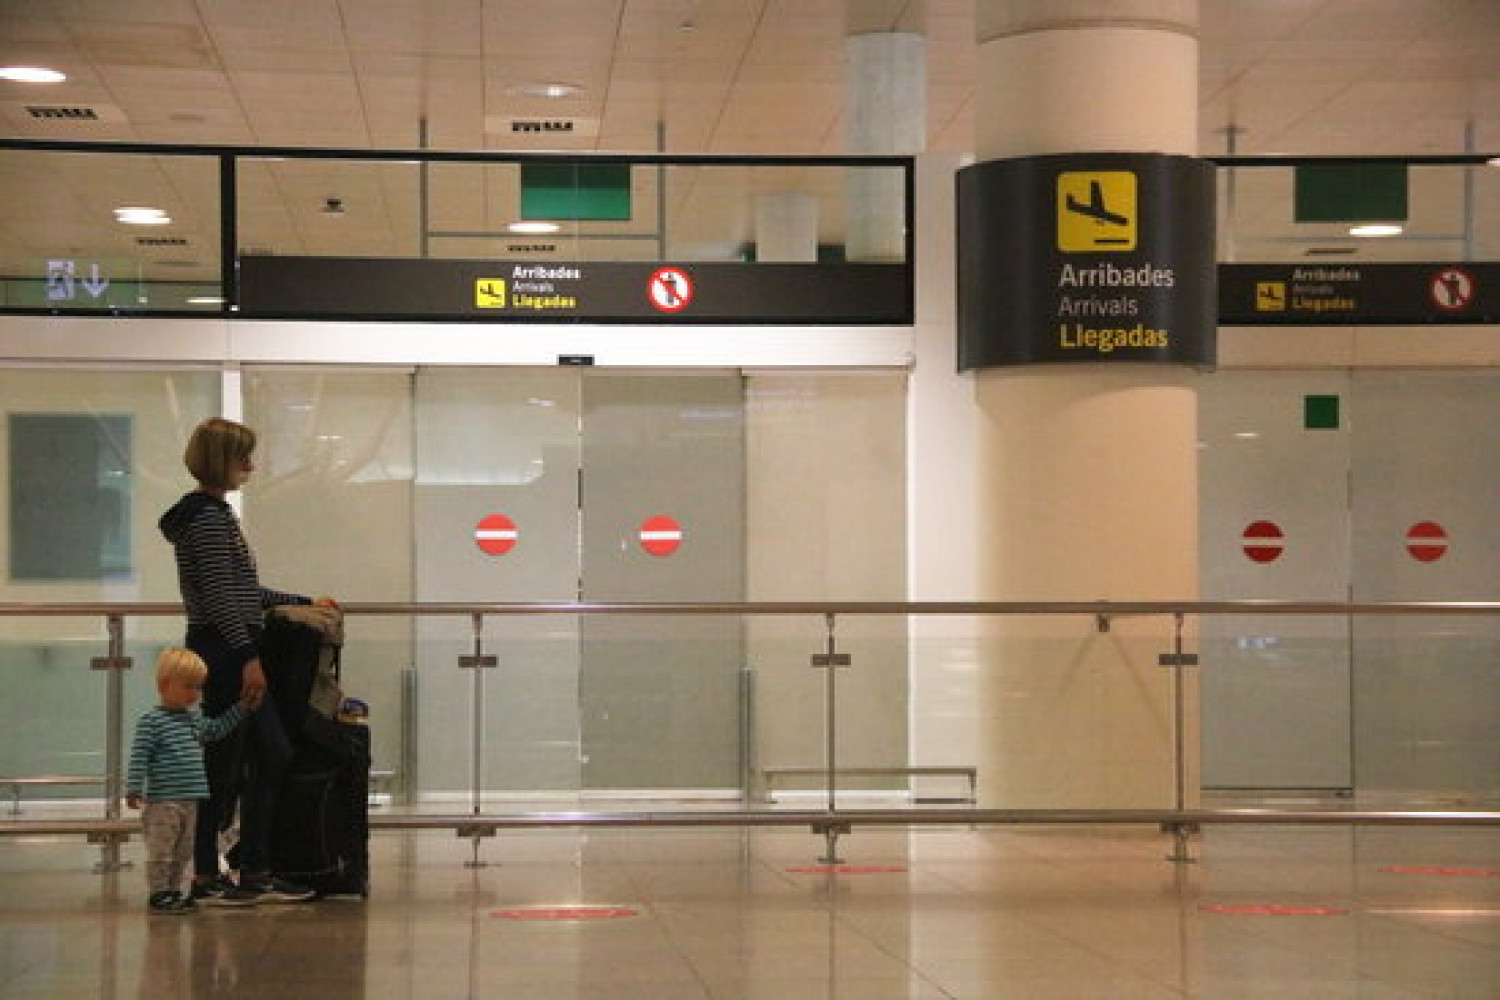 A passenger waiting in the Barcelona's arrival zone on June 21, 2020 (by Albert Cadanet)